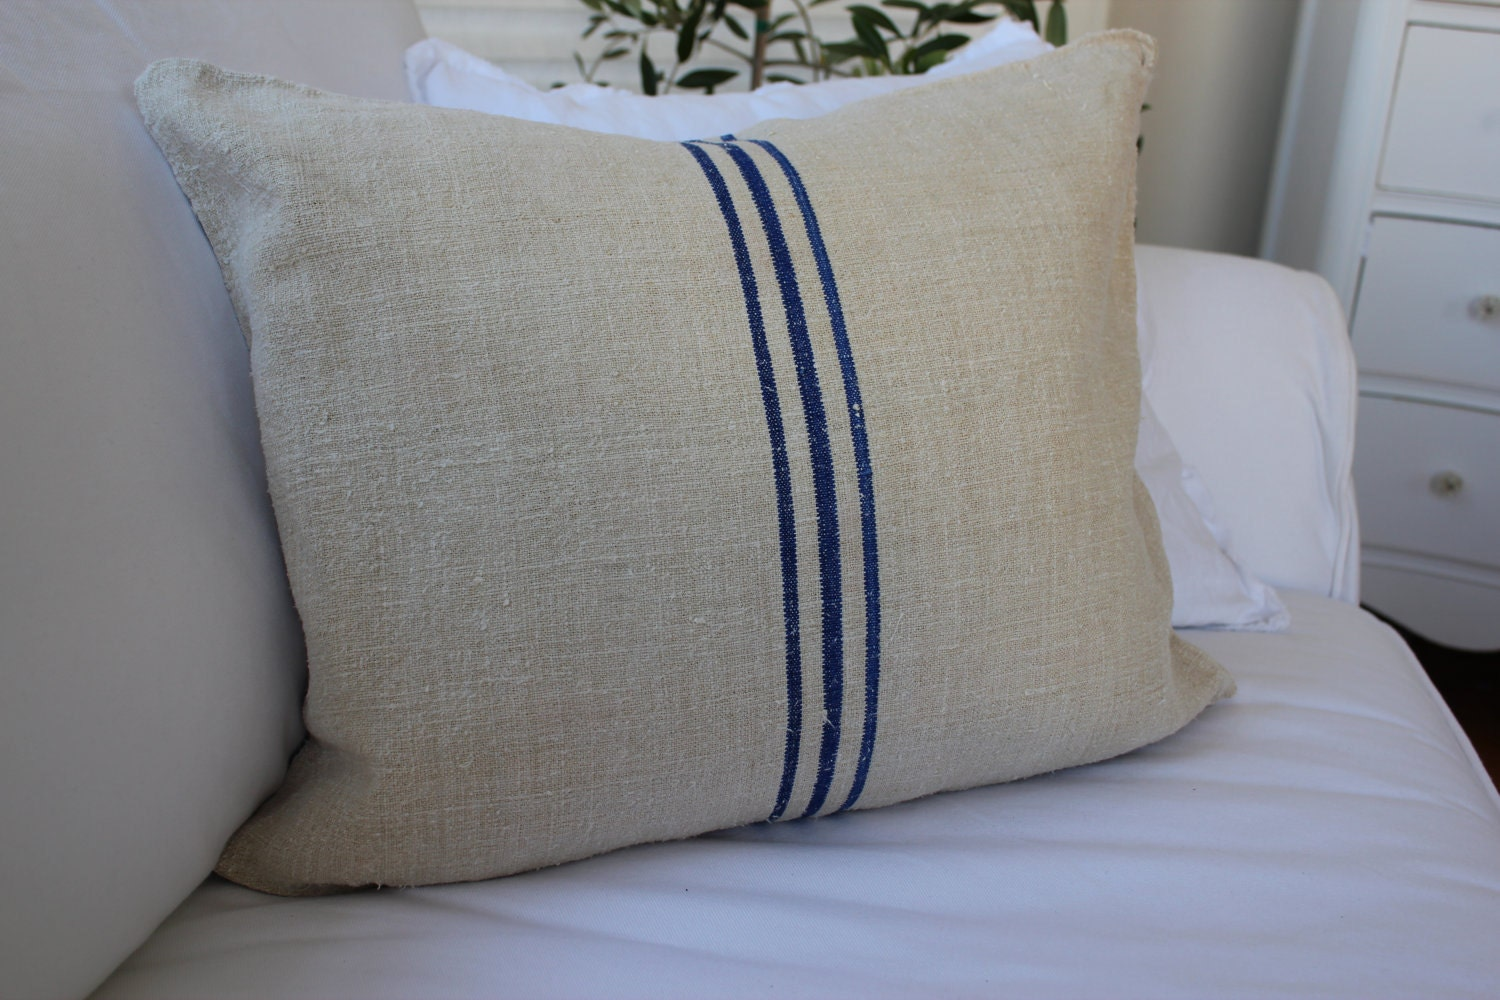 Vintage European Grain Sack Pillow Blue Striped